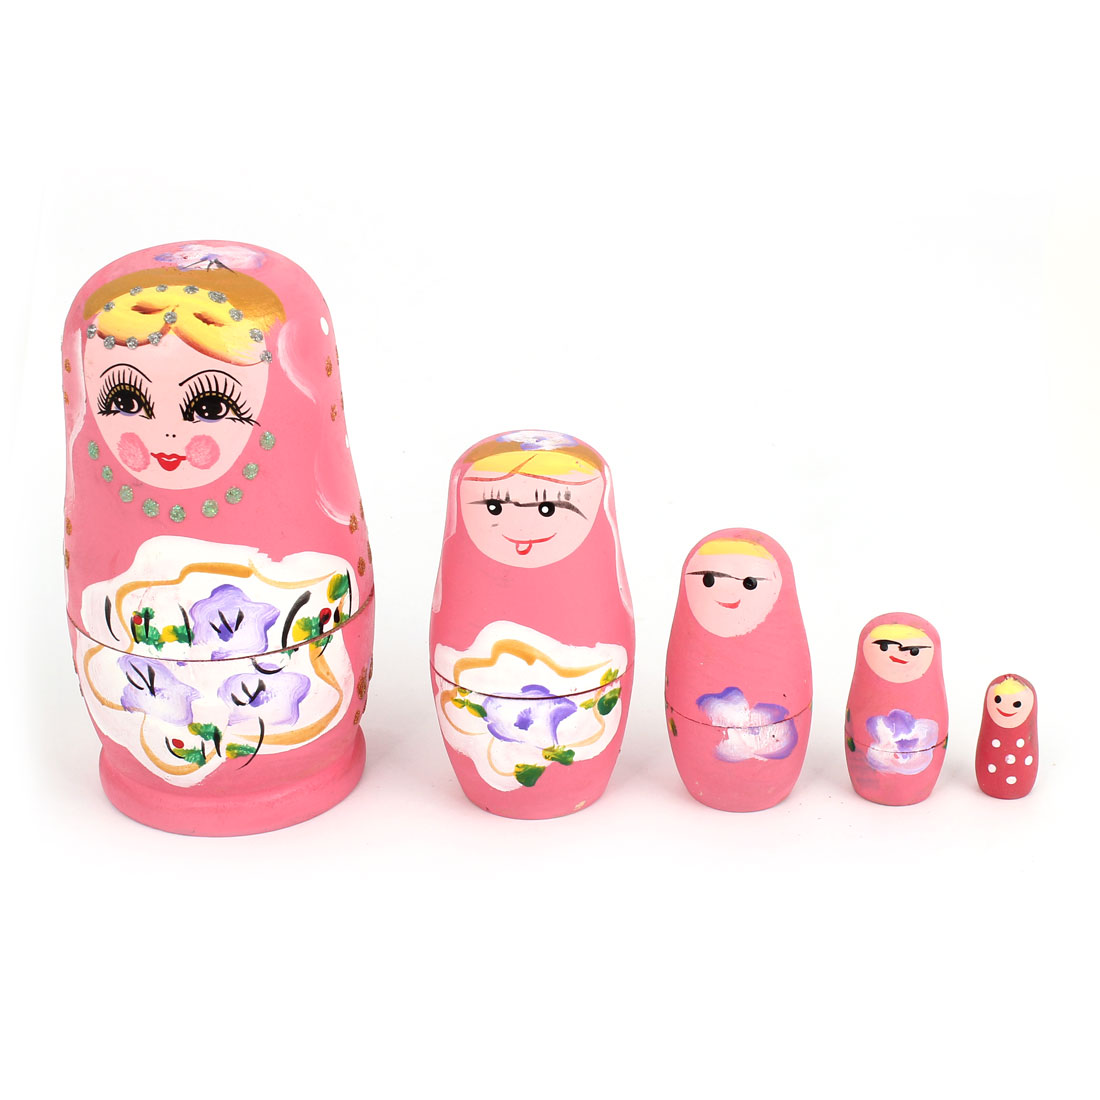 Unique Bargains Smile Girl Painting Pink Wooden Nesting Russian Doll Matryoshka Decor Set 5 in 1